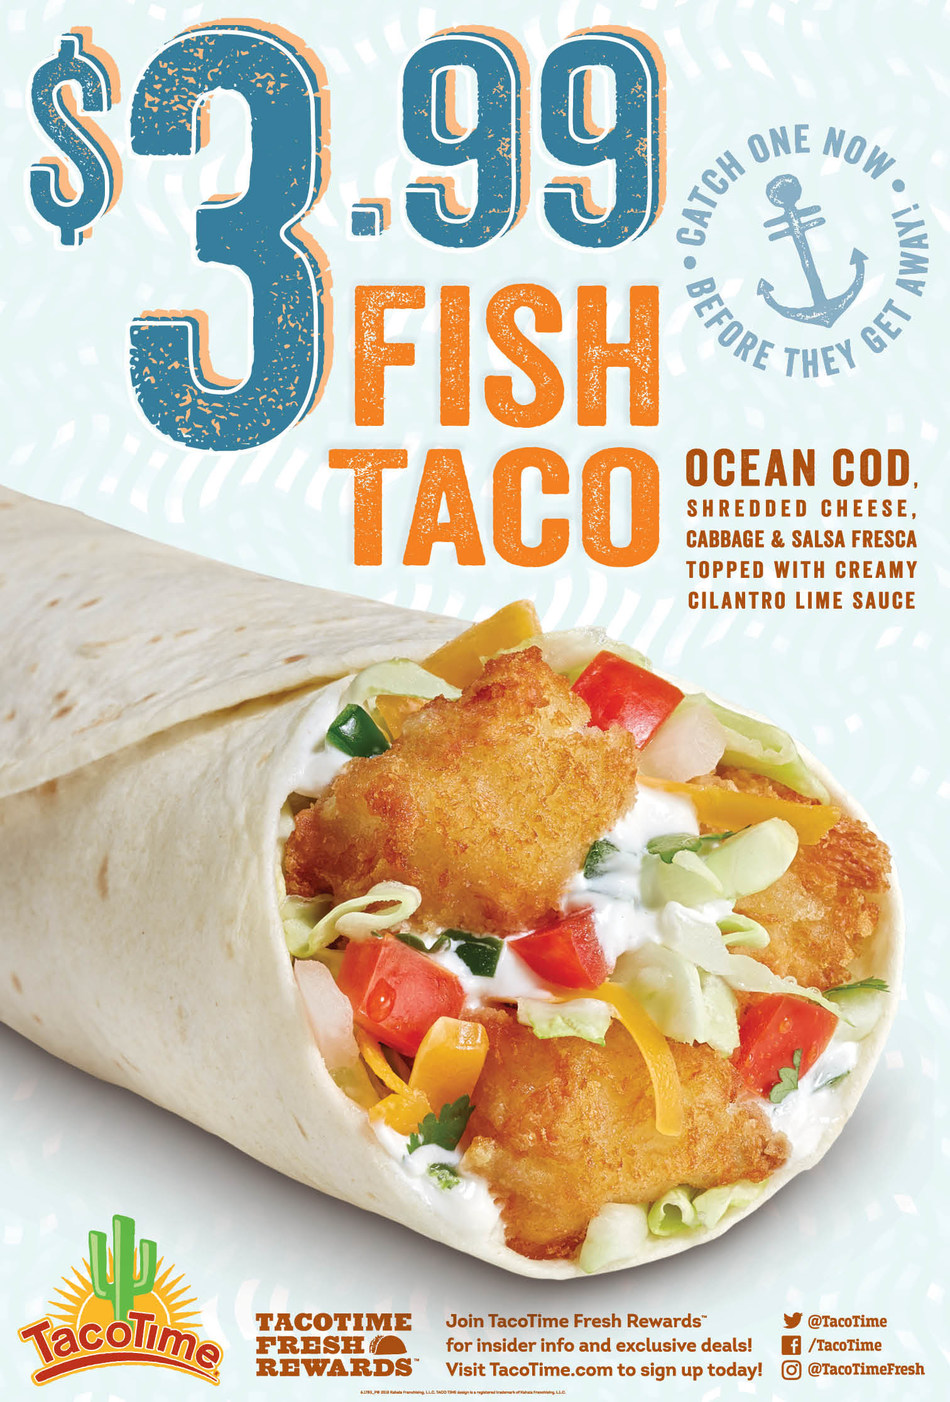 TacoTime introduces the new $3.99 Fish Taco, available beginning Feb. 28, for a limited time only.